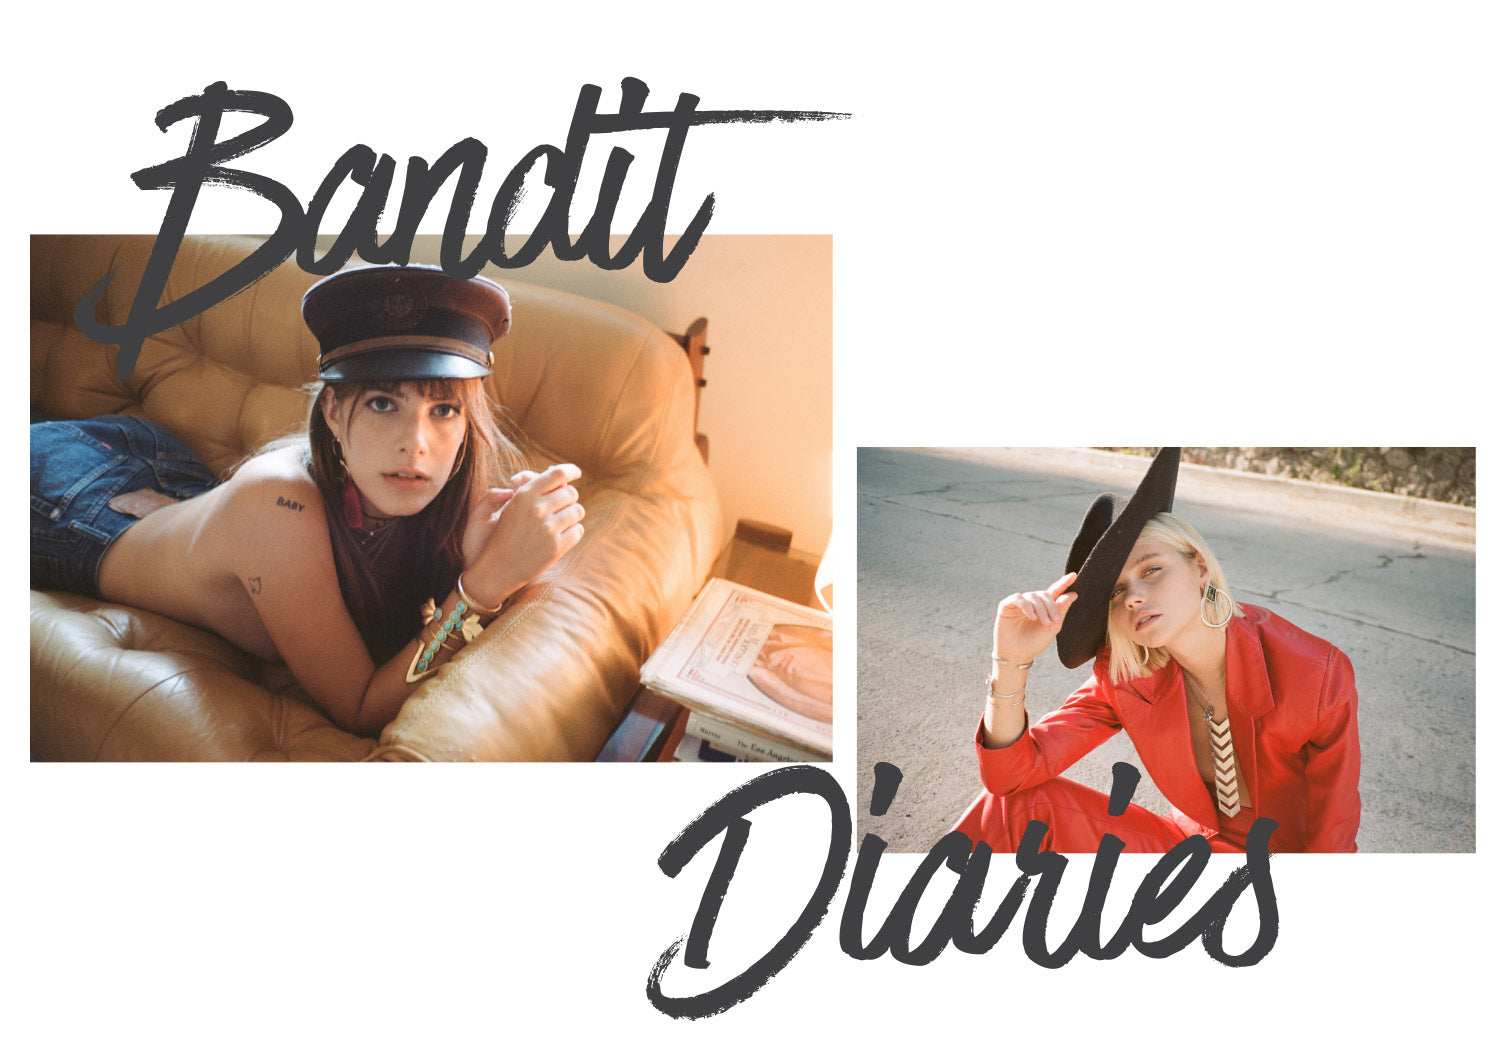 Bandit Diaries | The2Bandits Fall Collection 2017